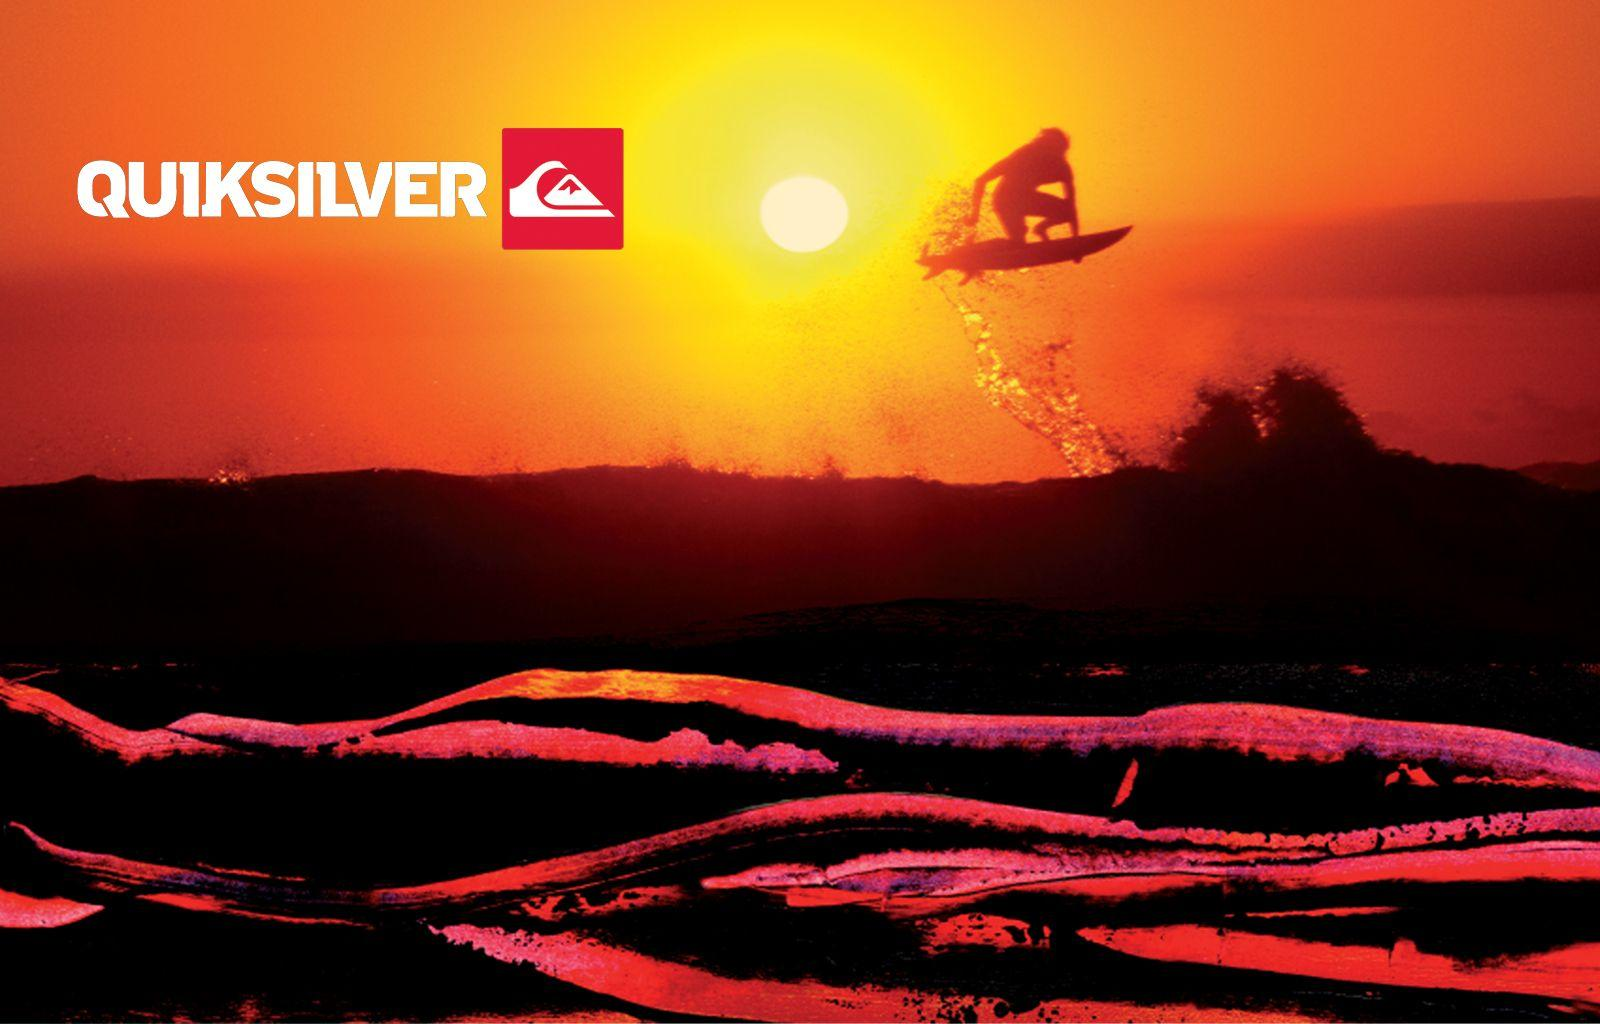 quiksilver surf wallpaper hd - photo #23